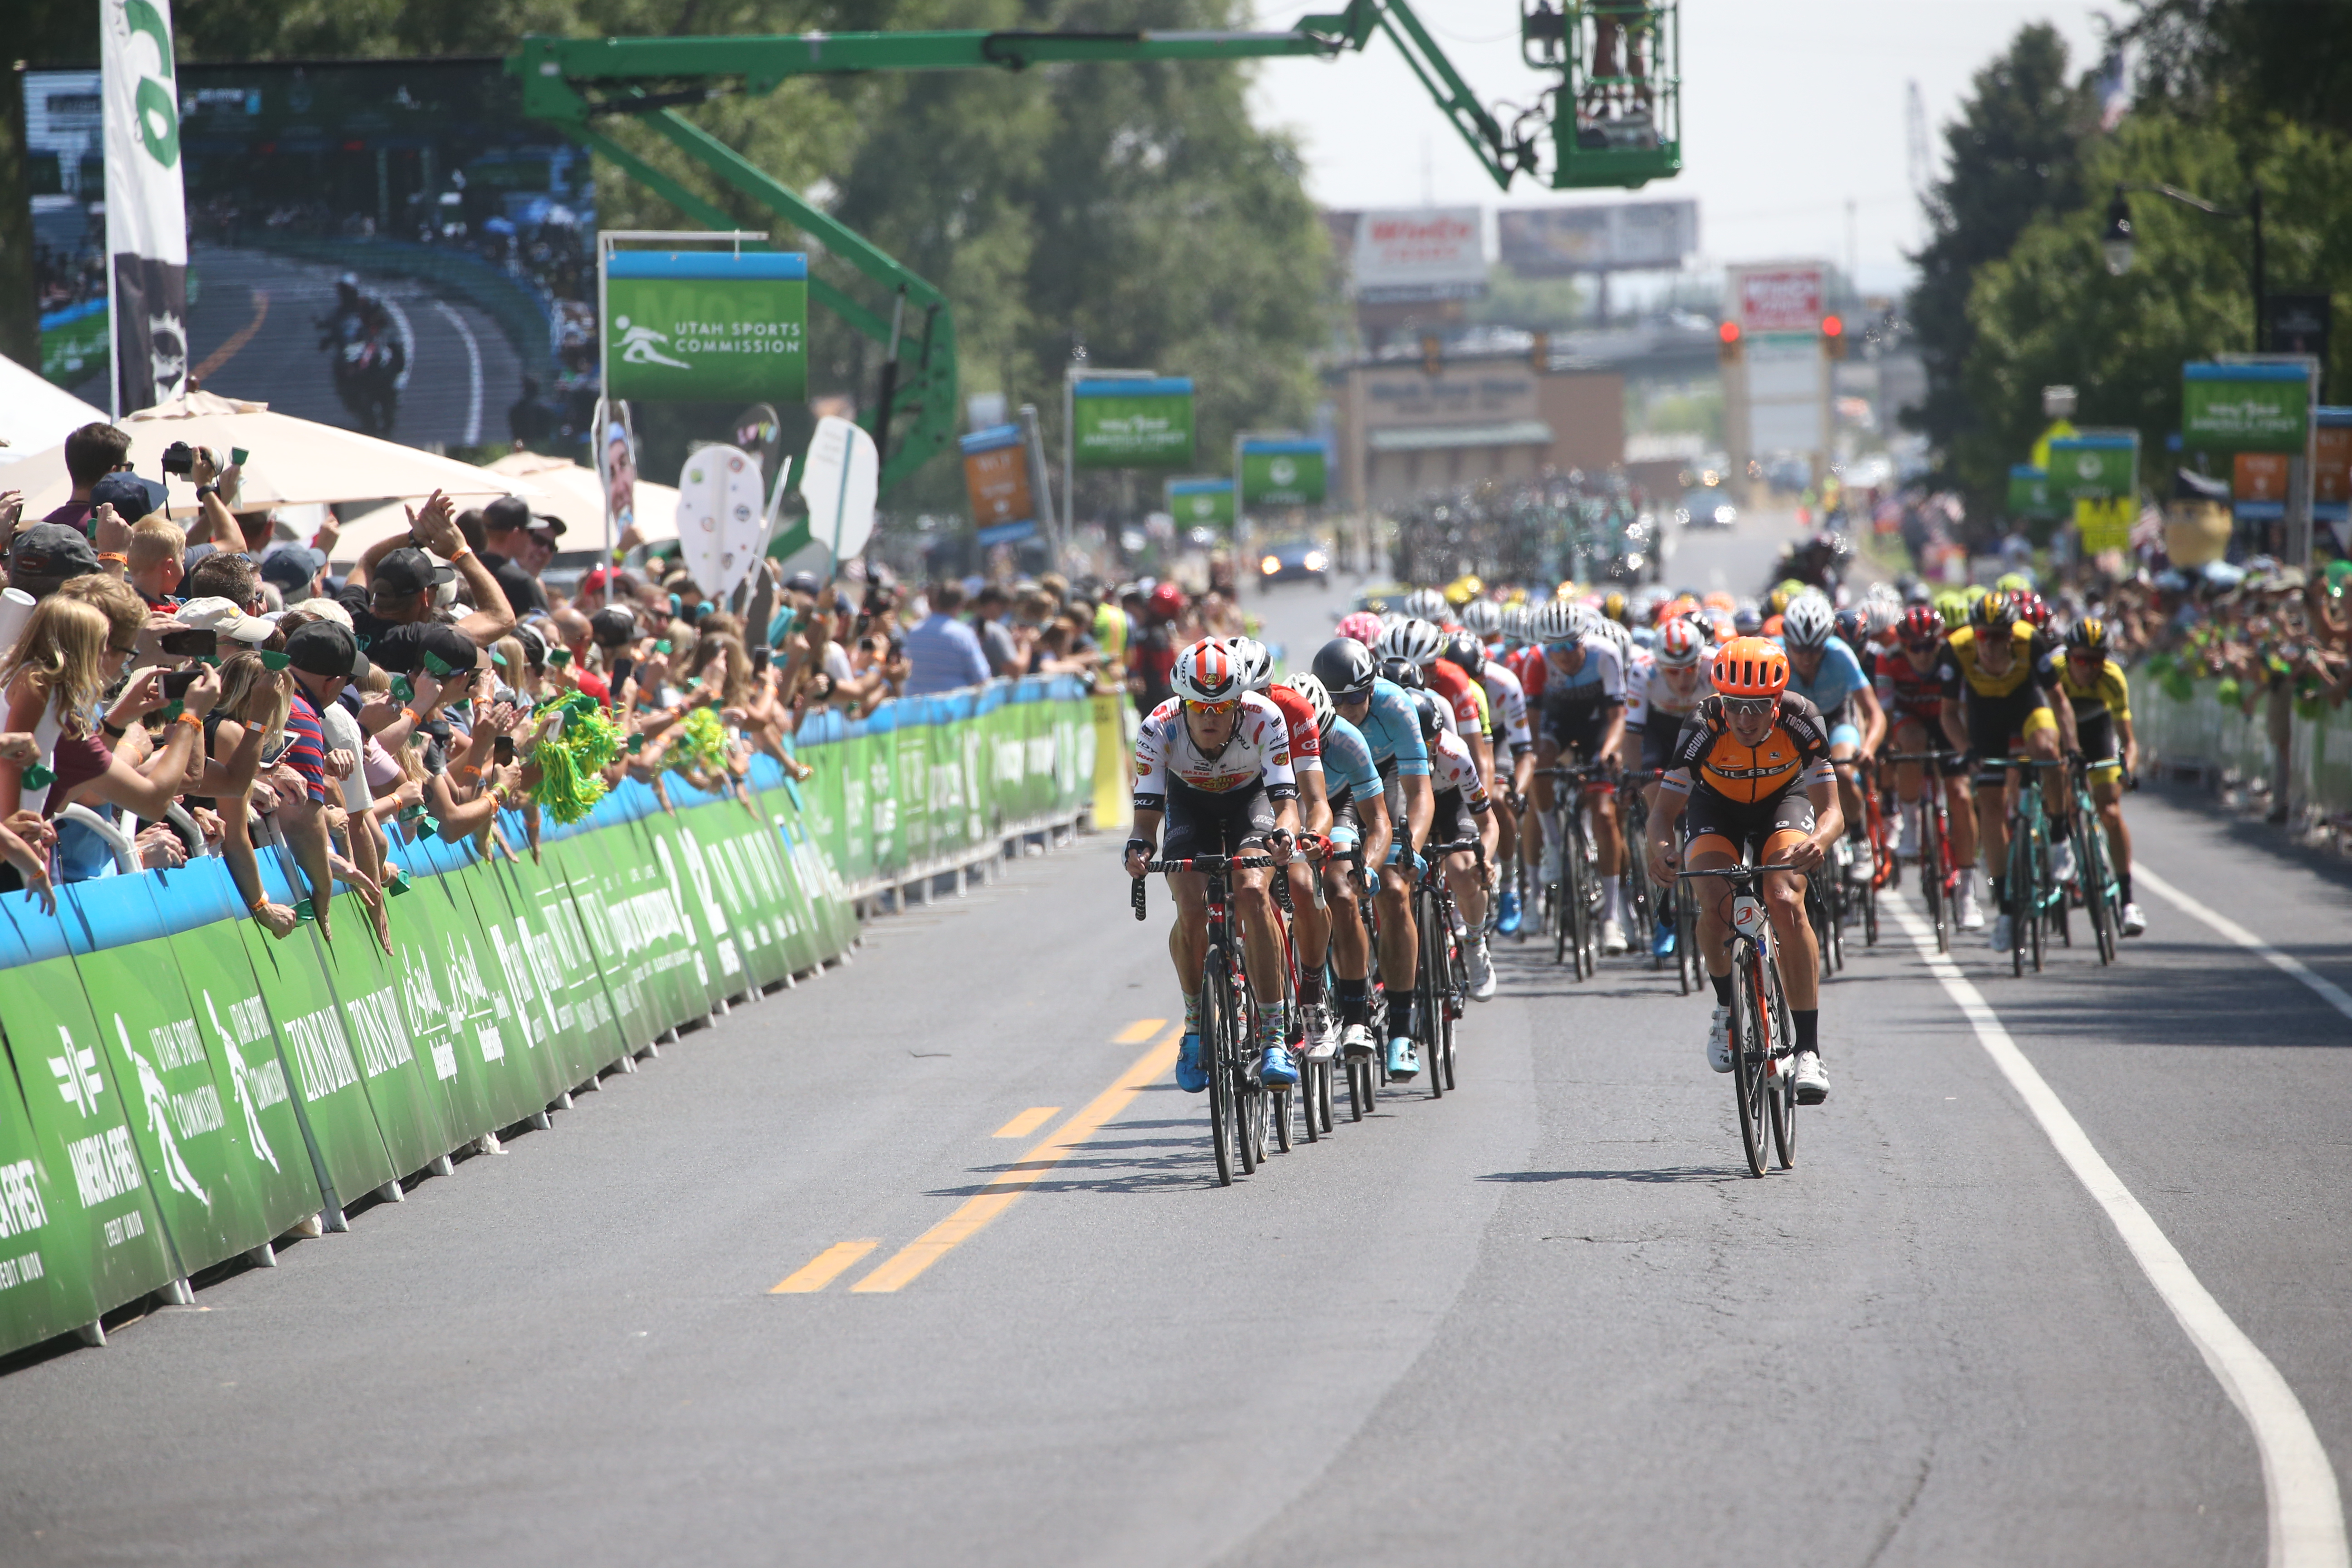 Layton out in force.  2018 Tour of Utah Stage 3, August 8, 2018, Layton, Utah. Photo by Cathy Fegan-Kim, cottonsoxphotography.net